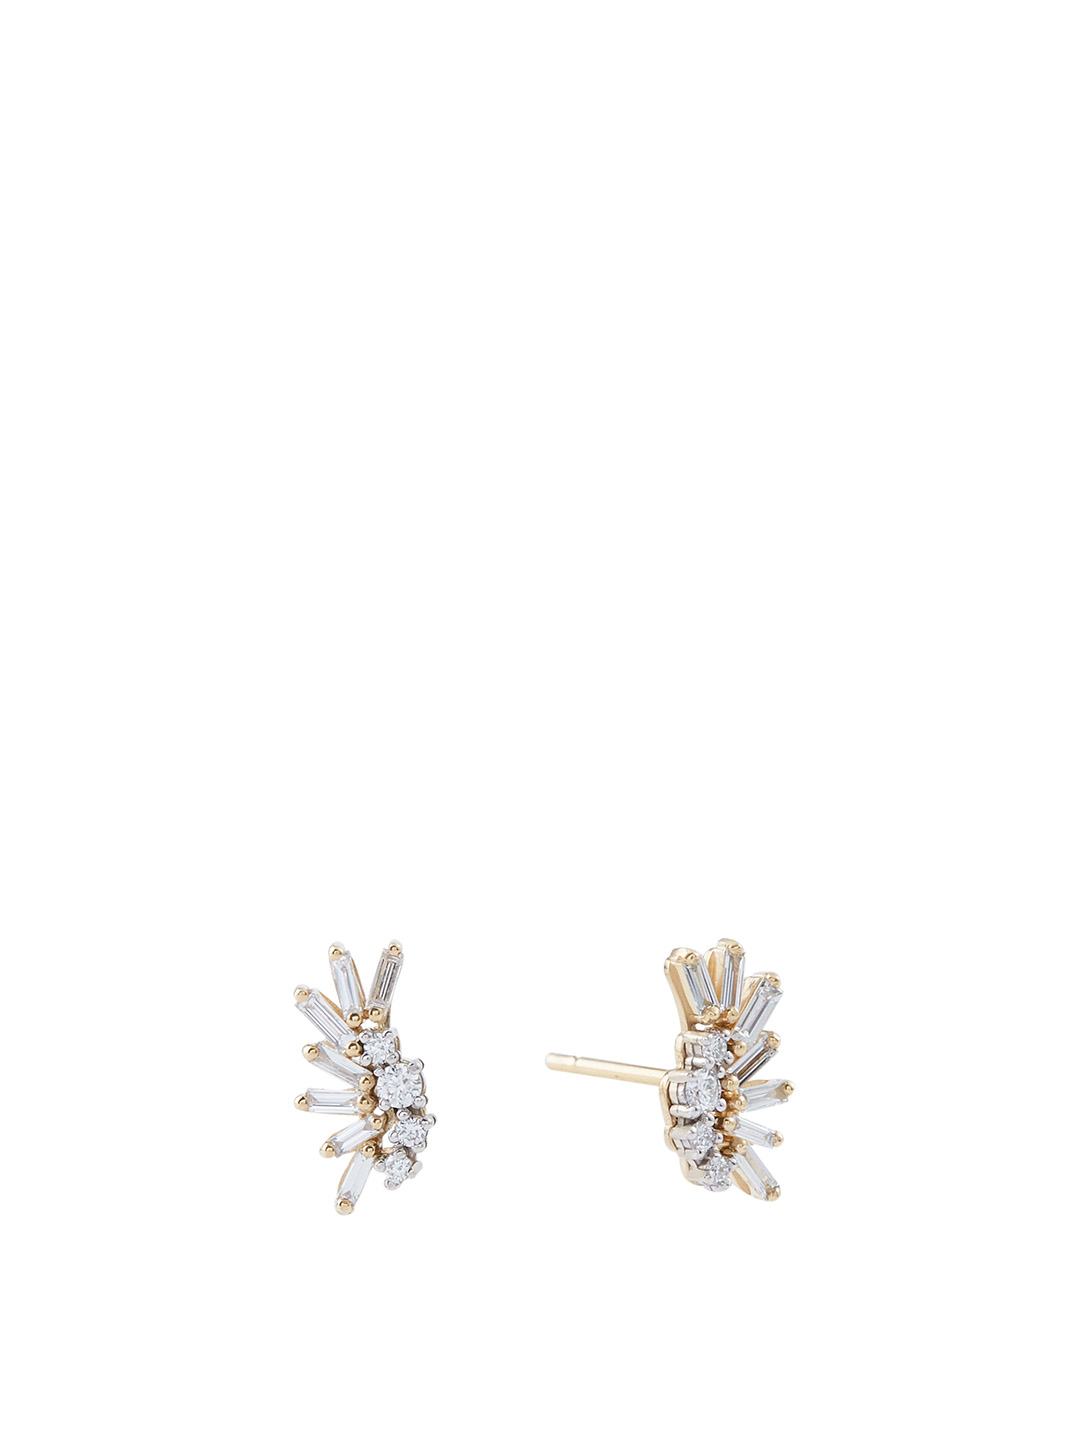 SUZANNE KALAN Small Fireworks 18K Yellow And White Gold Plume Earrings With Diamonds Women's Metallic